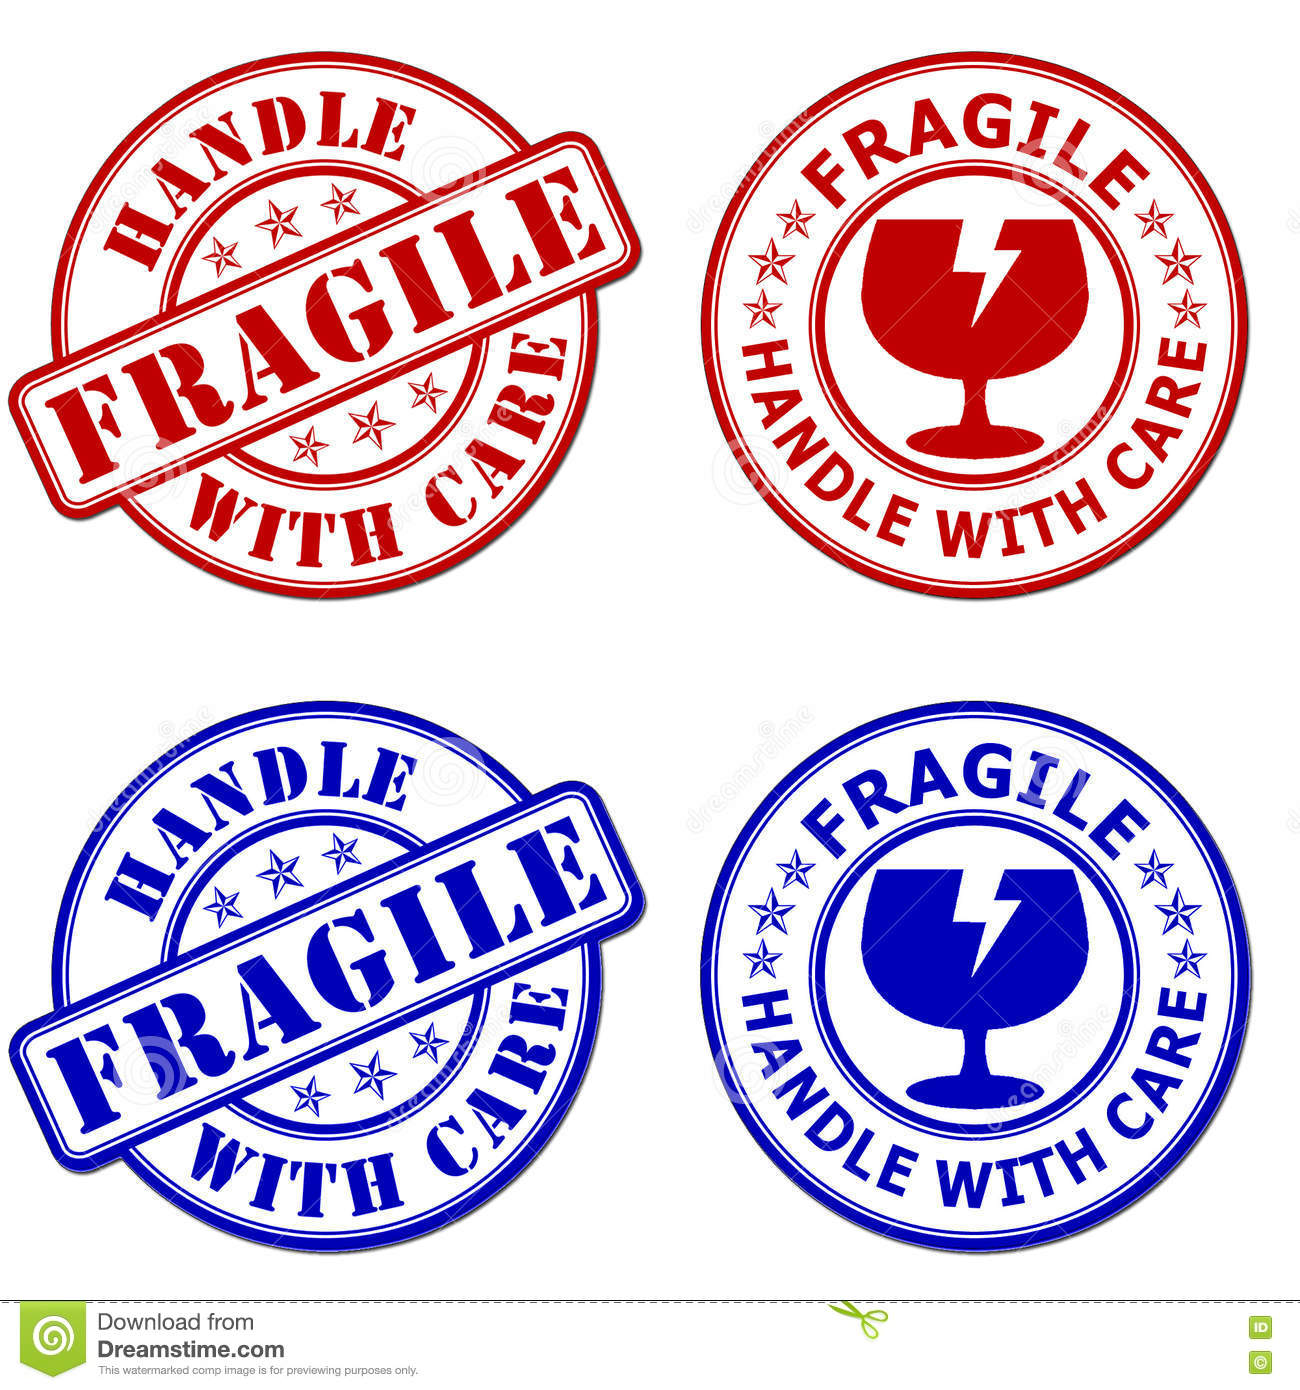 Fragile handle with care stock illustration illustration of fragile handle with care buycottarizona